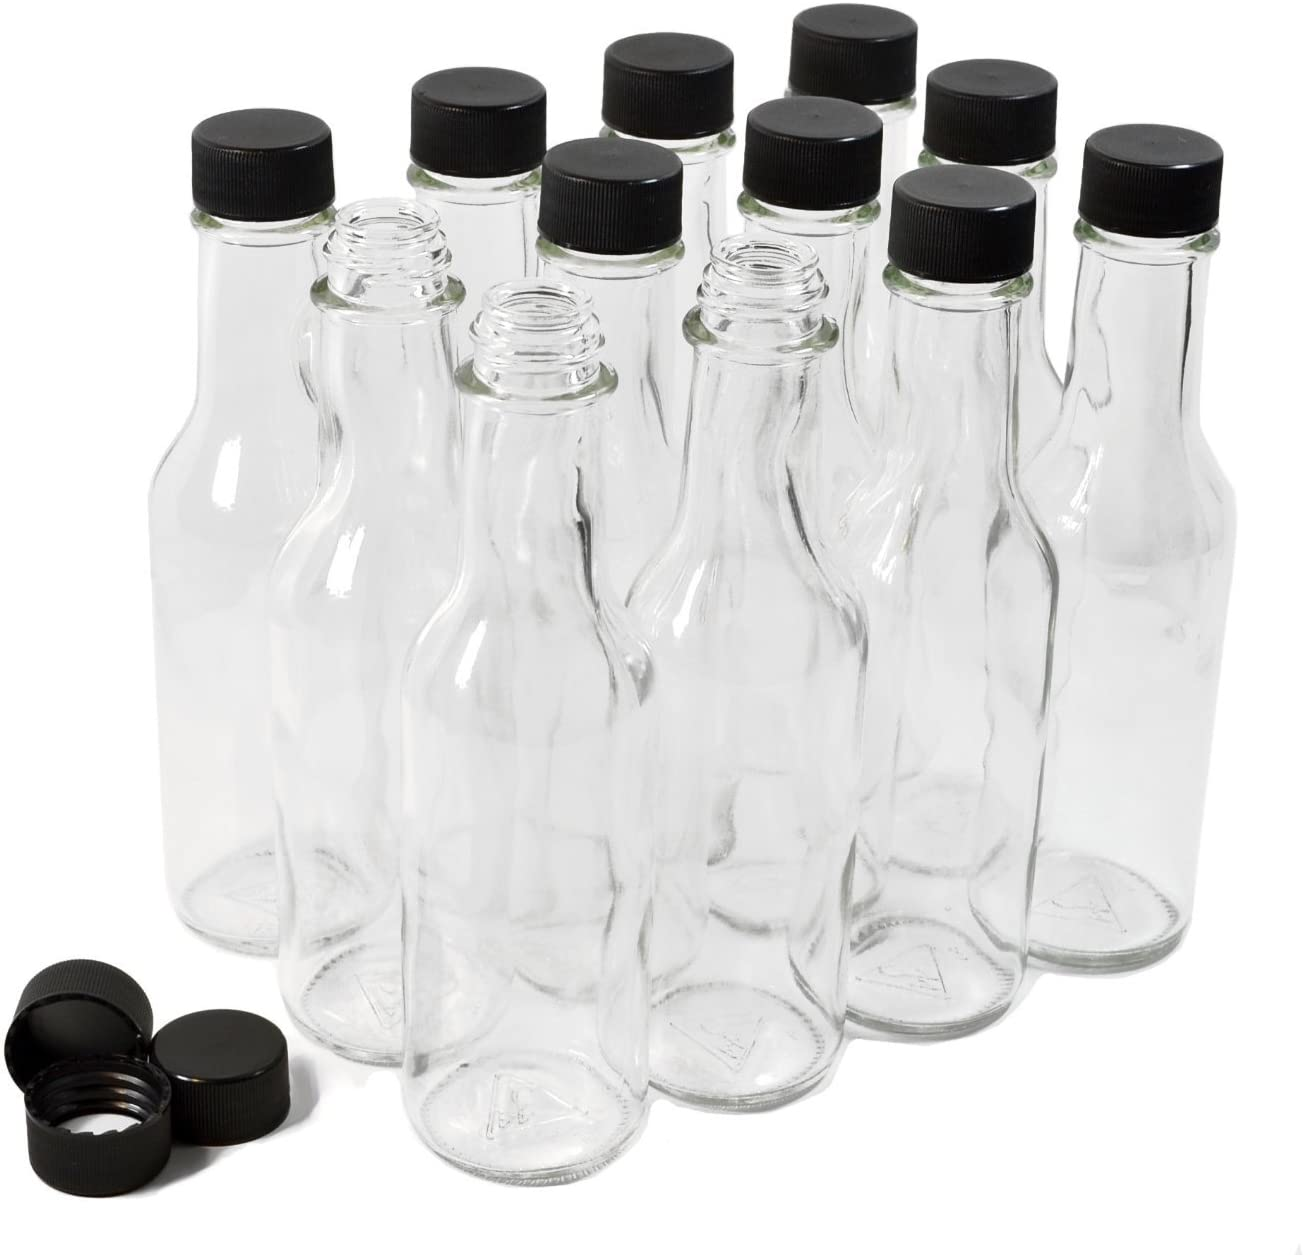 Clear Glass Woozy Bottles, 5 Oz - Case of 12